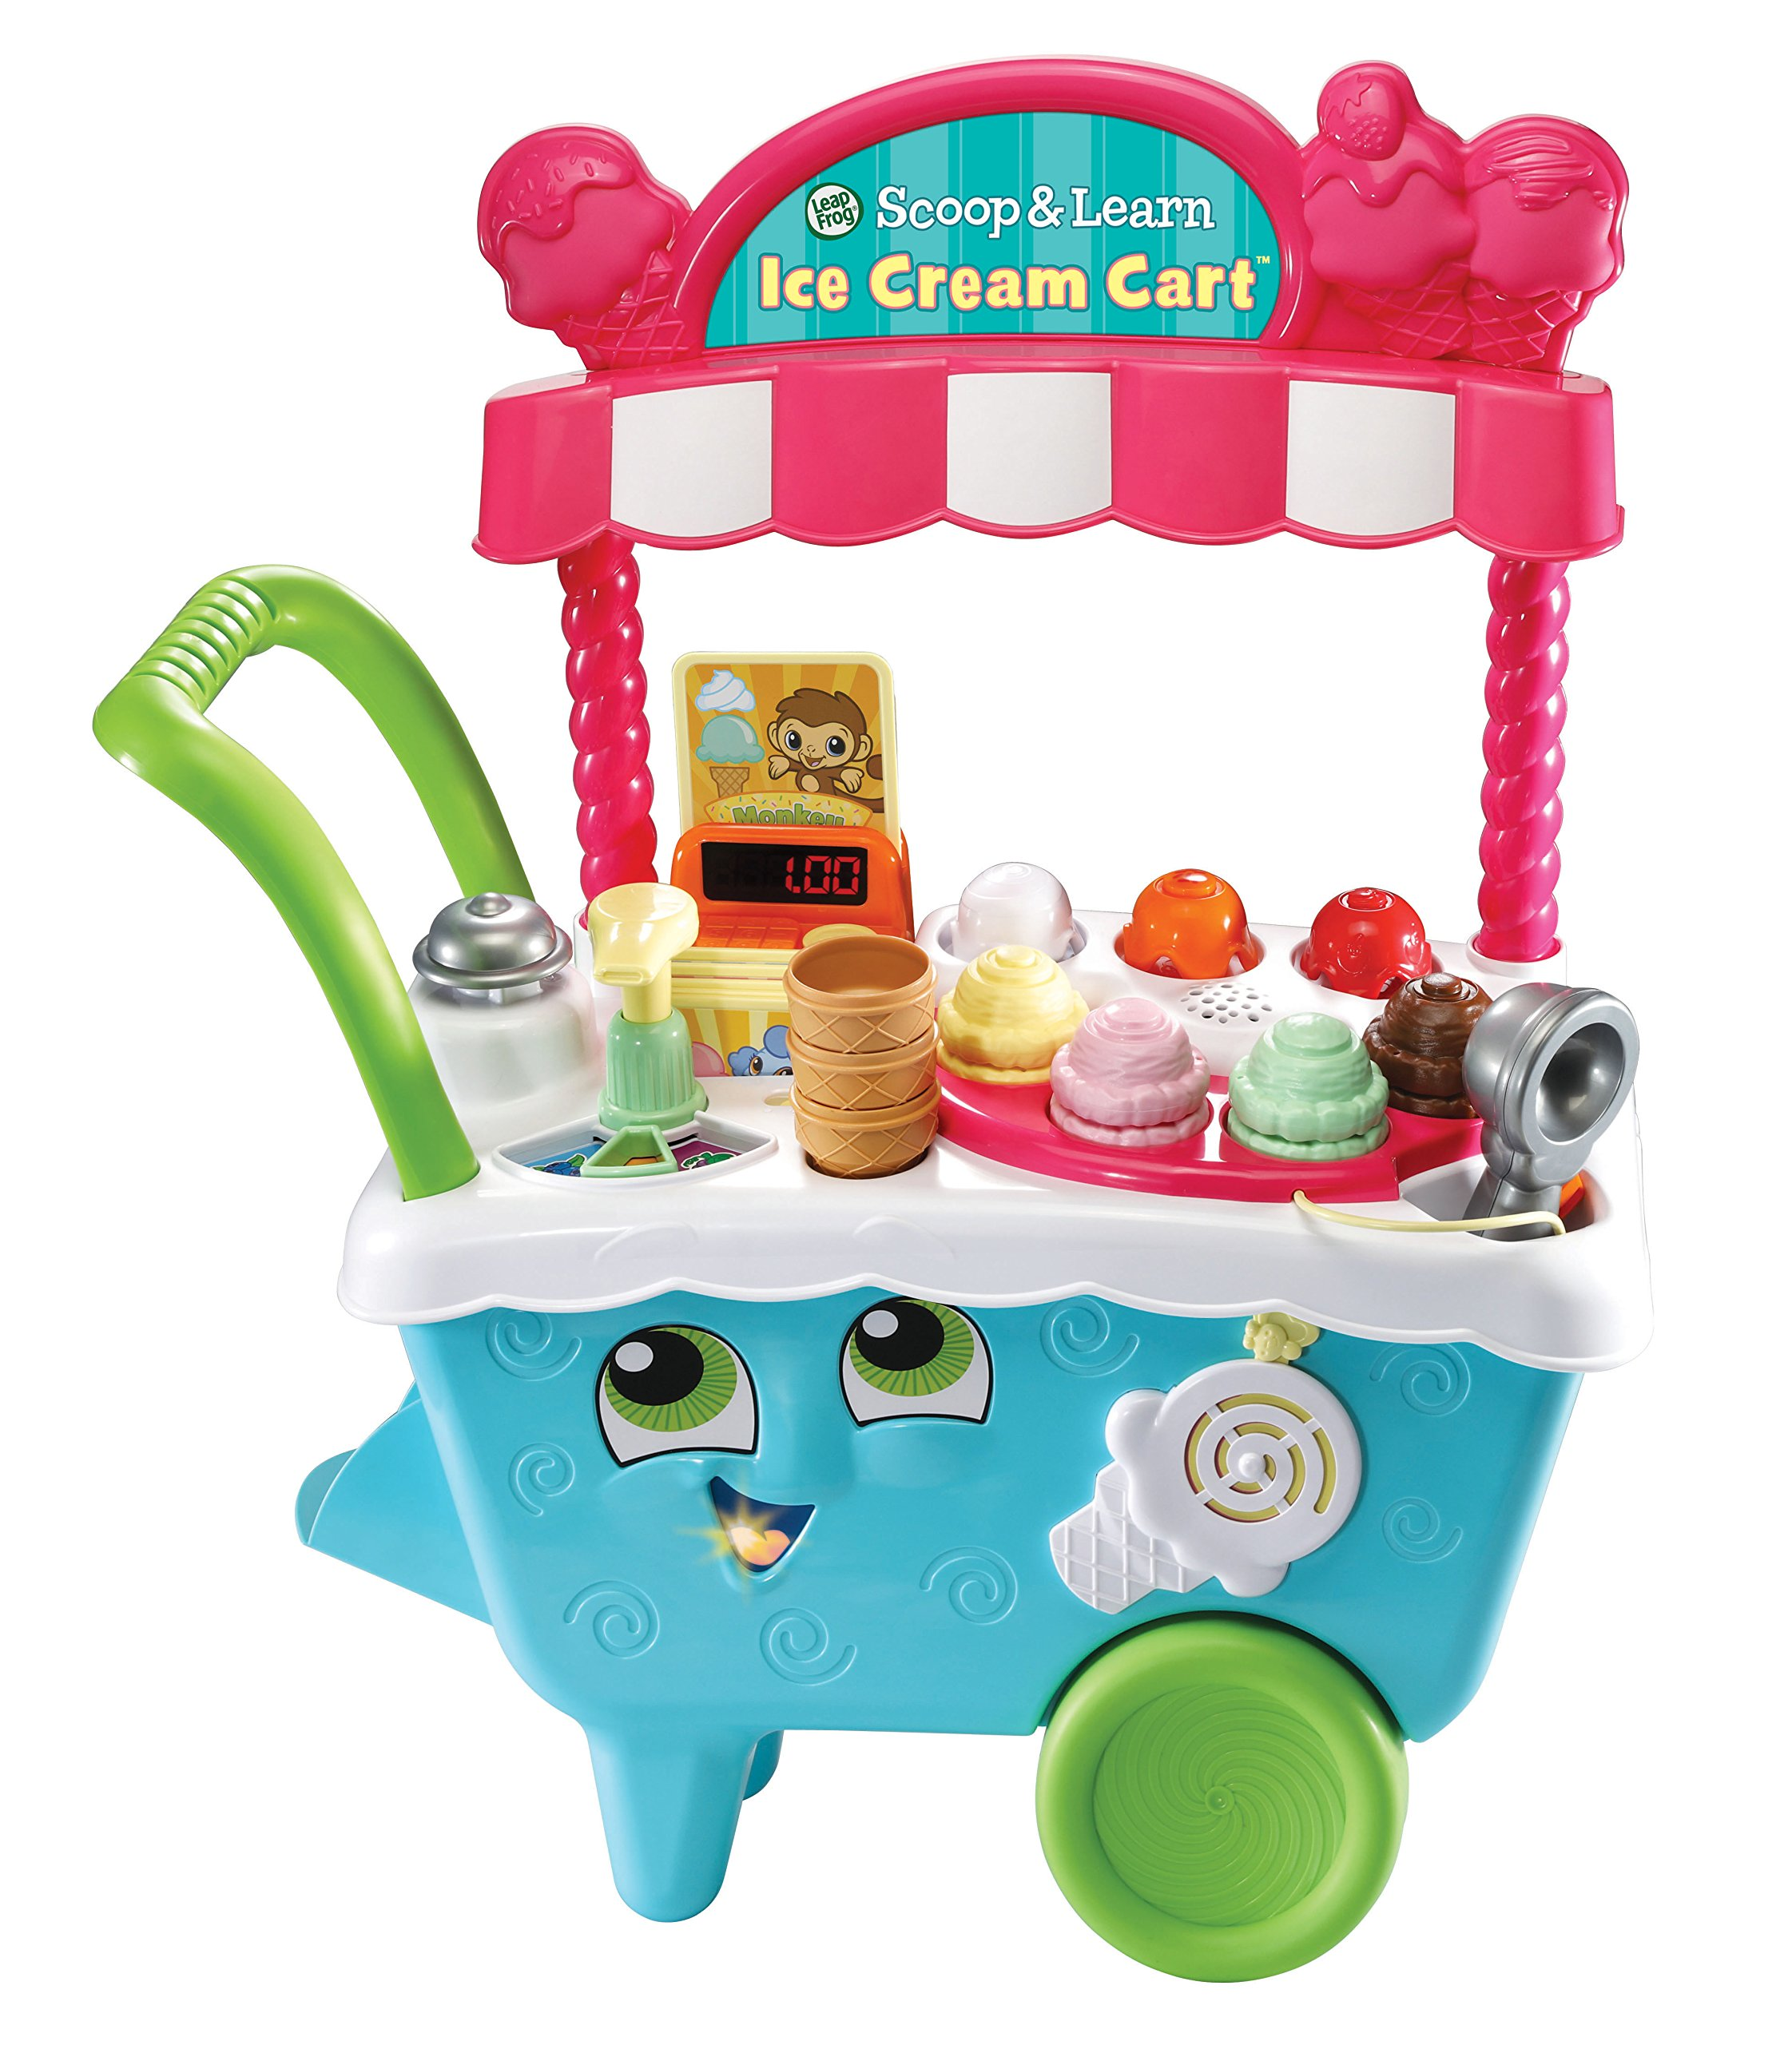 LeapFrog Scoop & Learn Ice Cream Cart (English Version) product image